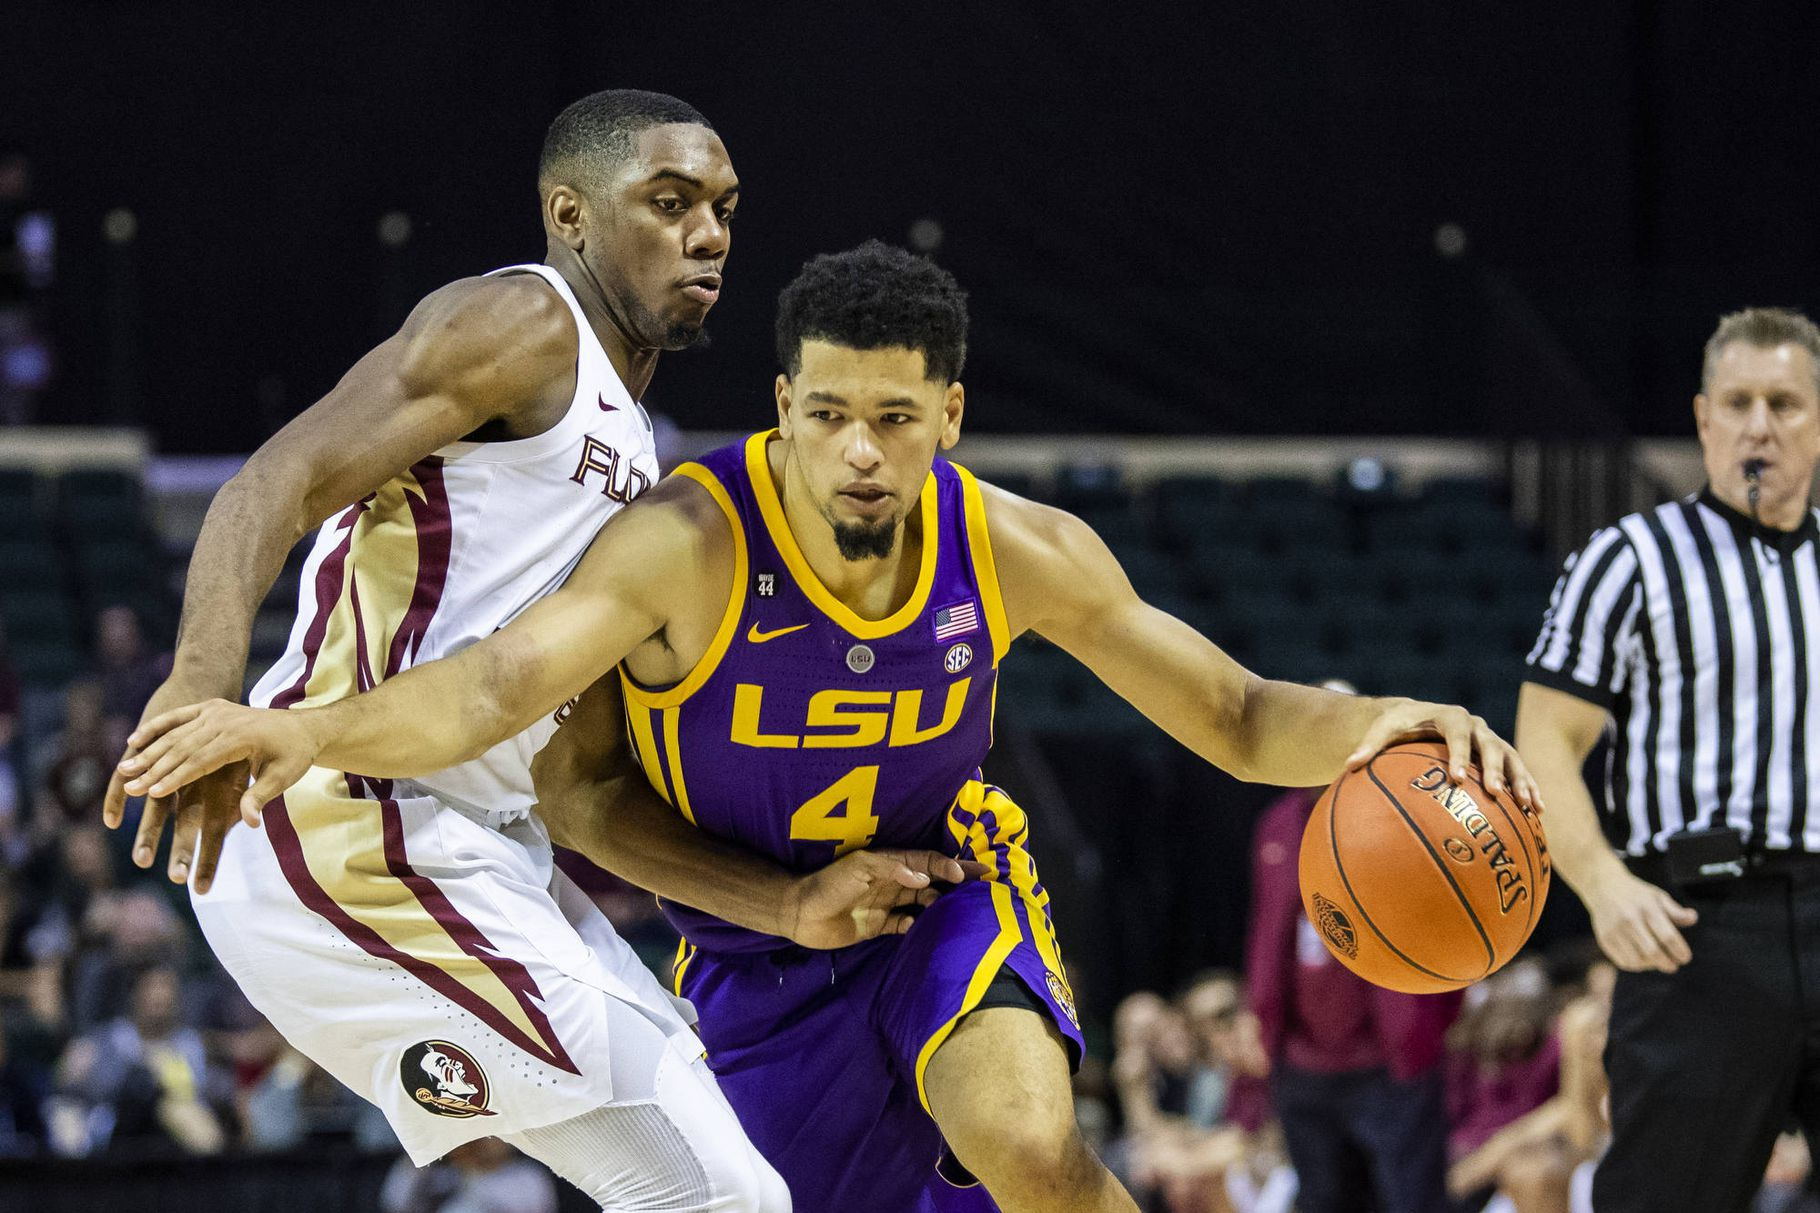 Marlon Taylor, Skylar Mays to return to LSU